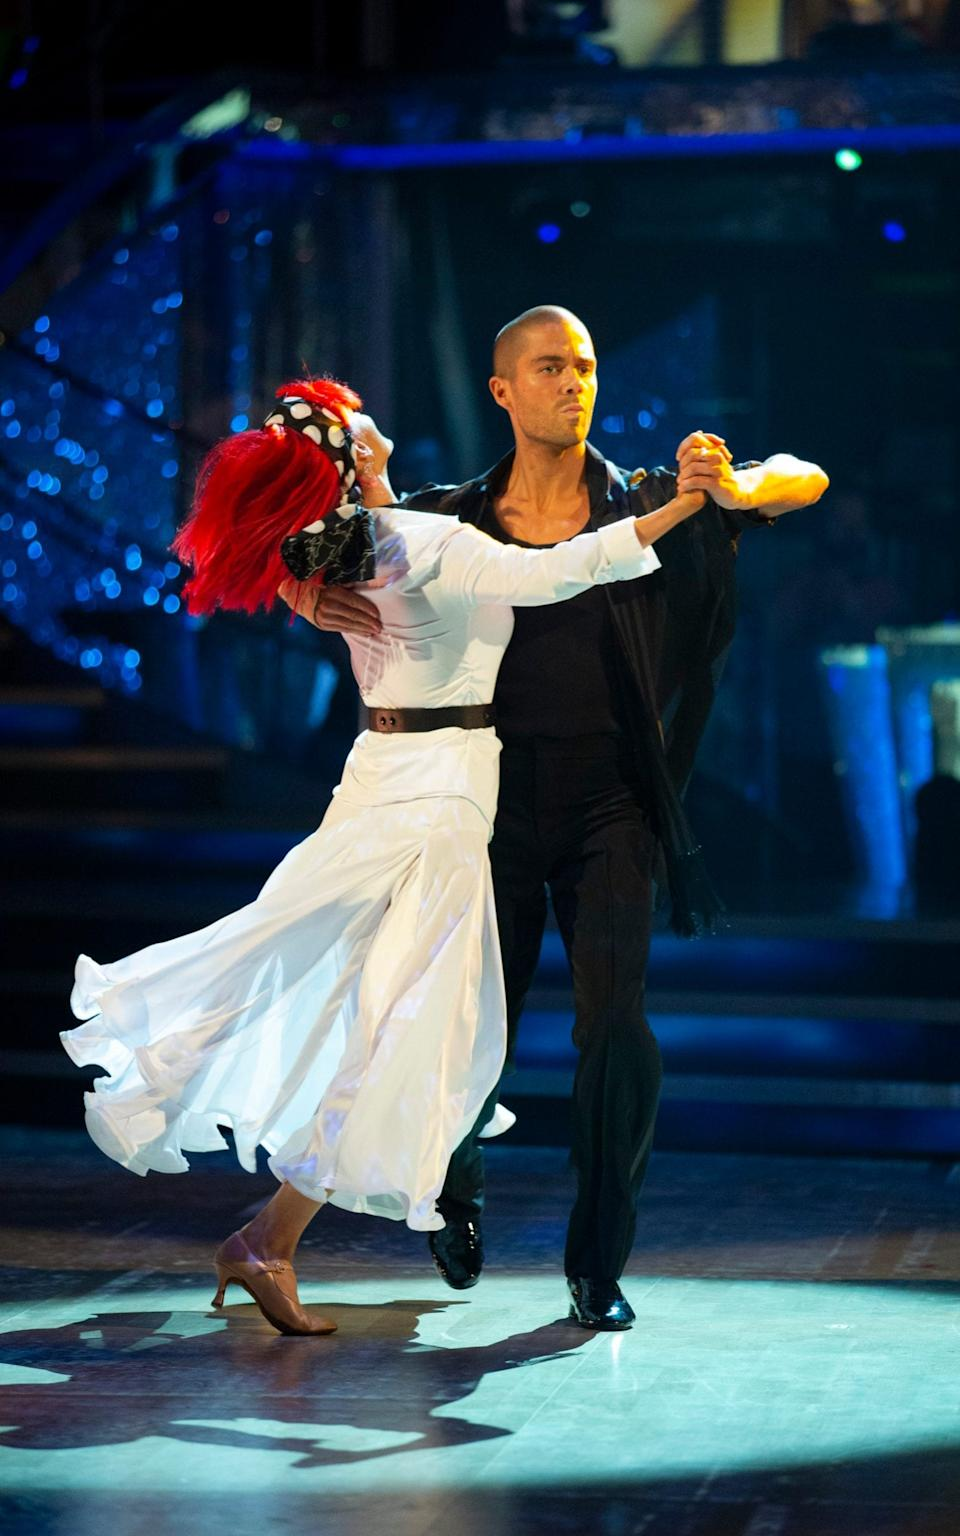 Max and Dianne's tango